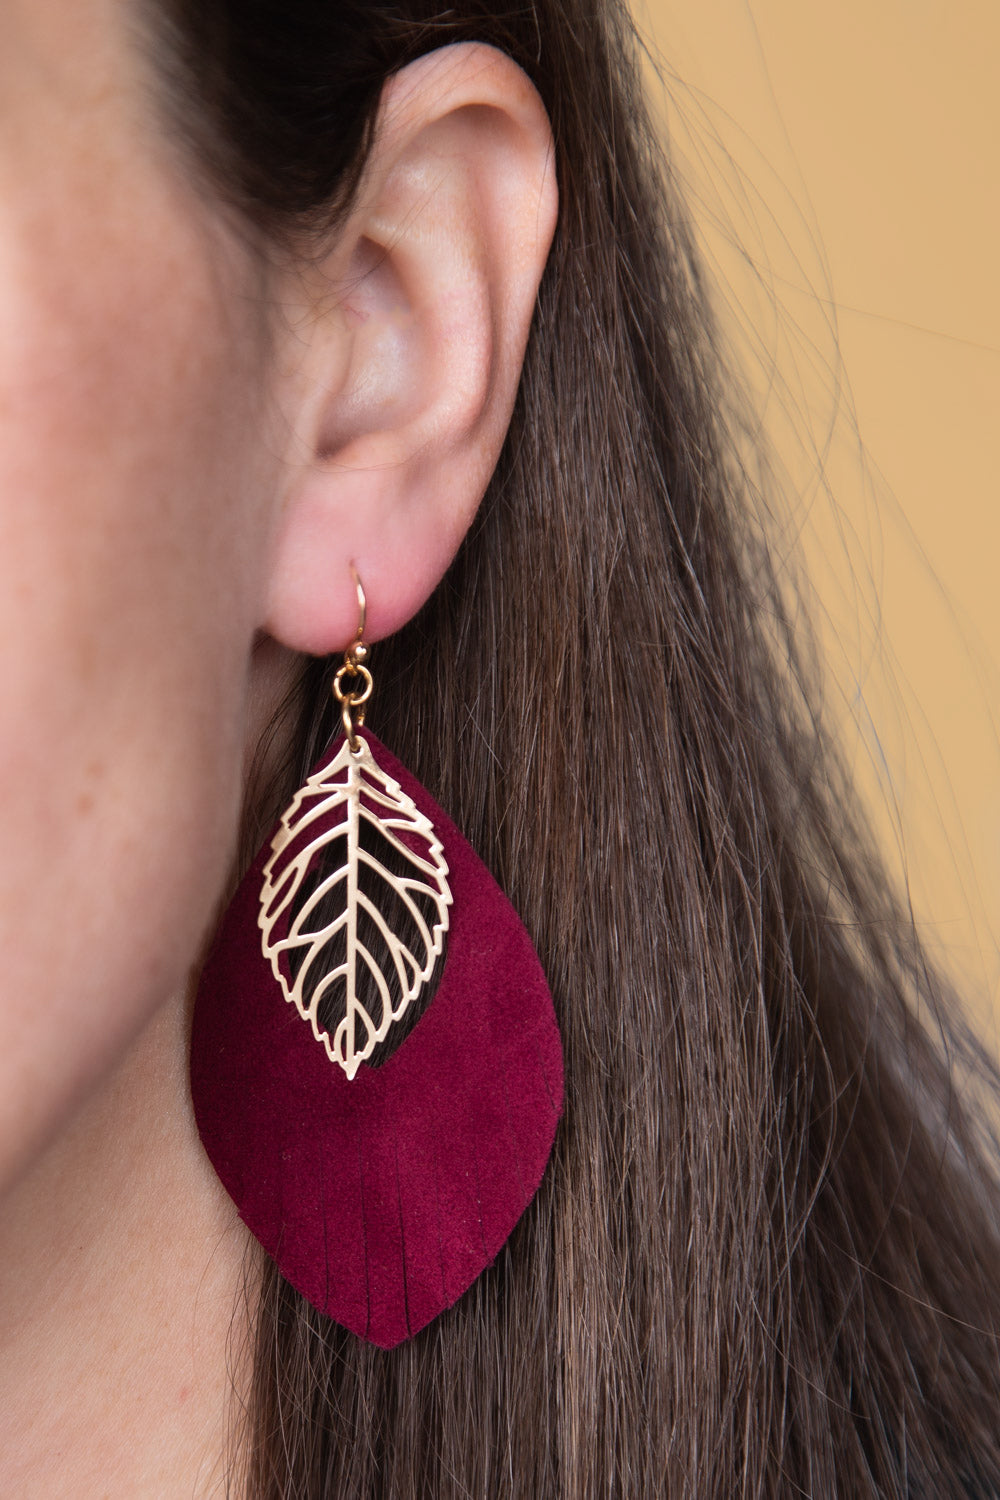 Type 3 Island Marooned Earrings